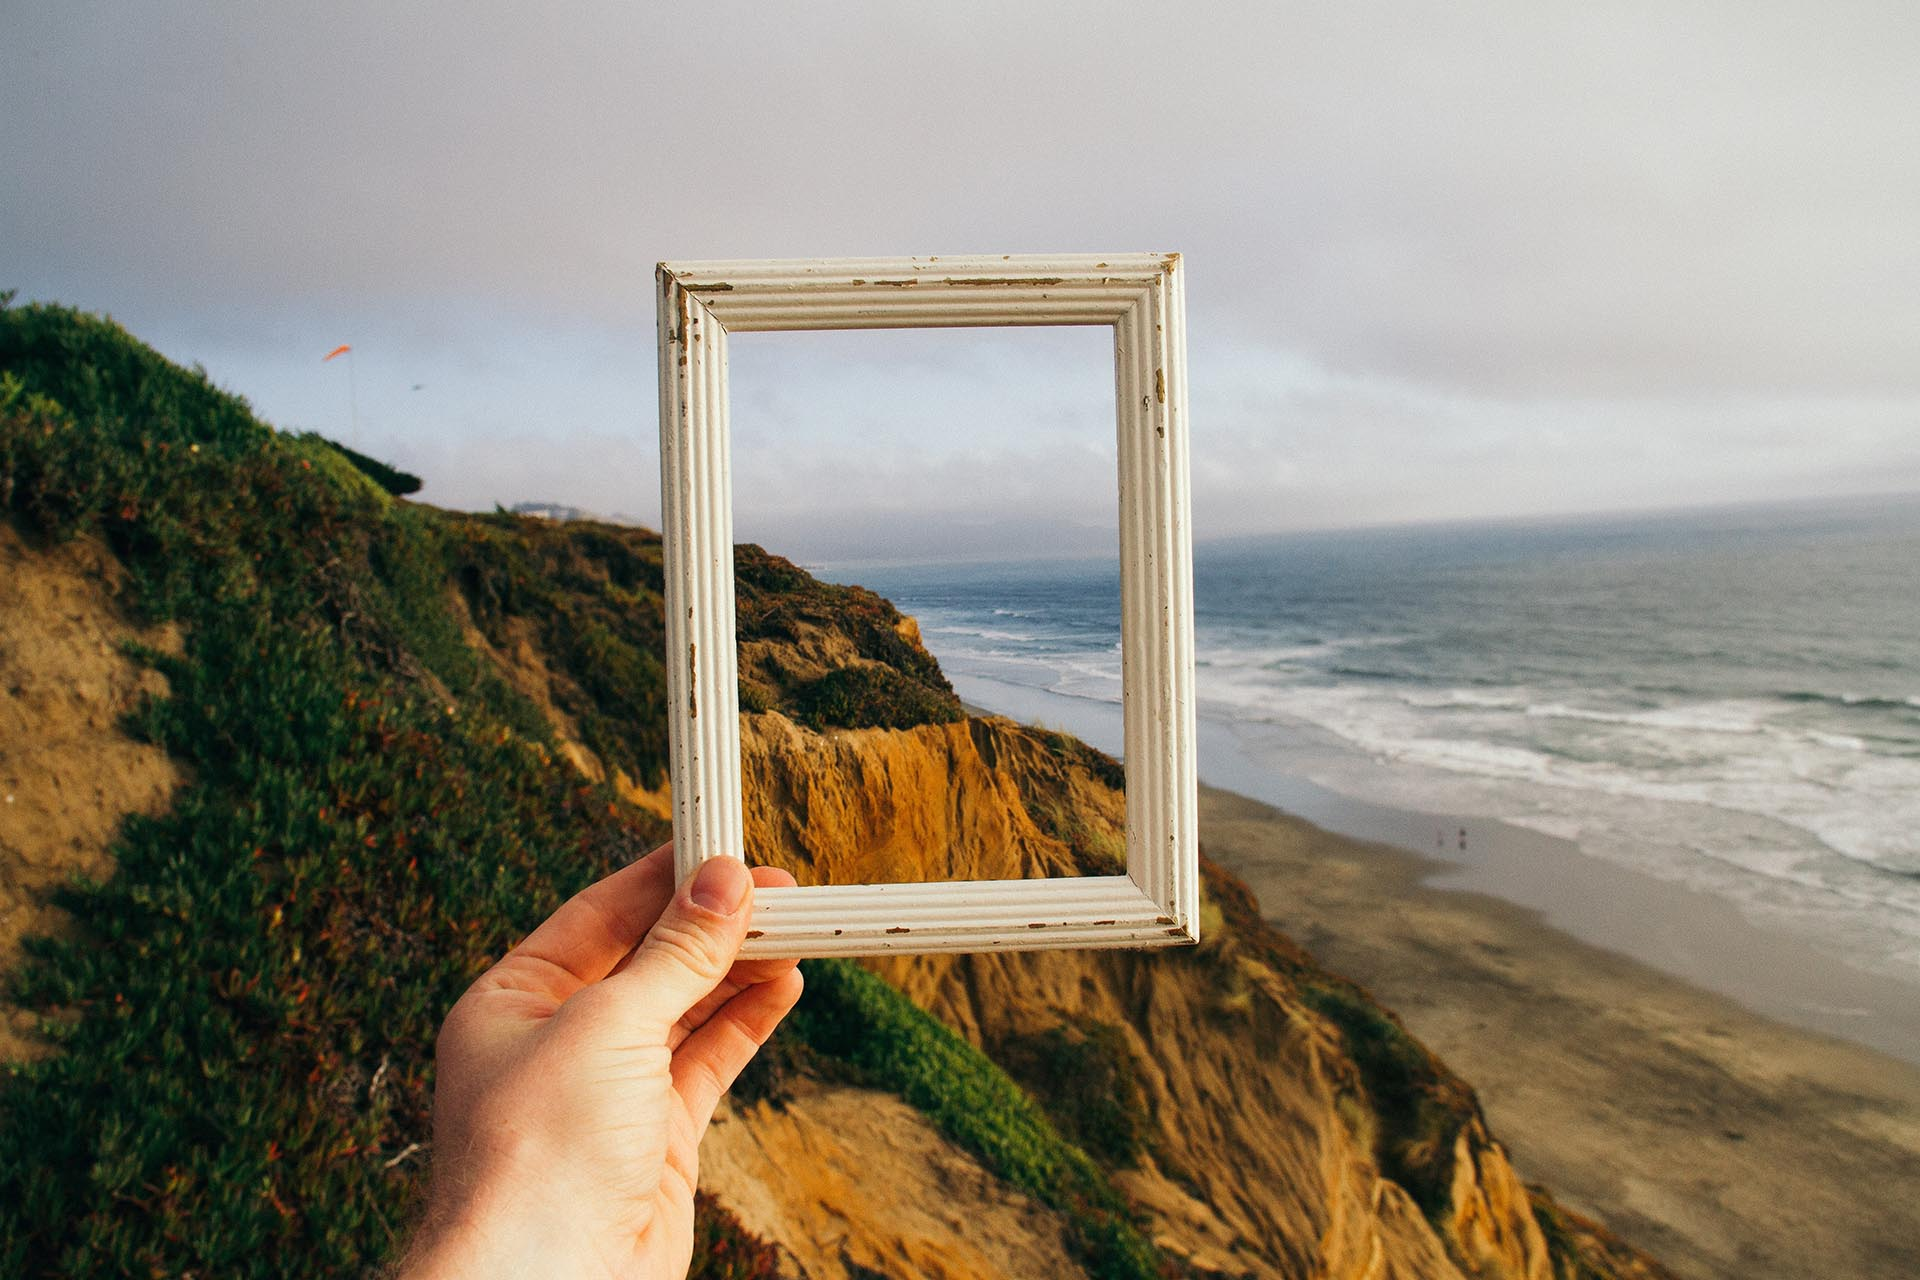 Hand holding a wooden frame in front of a cliff and beach landscape